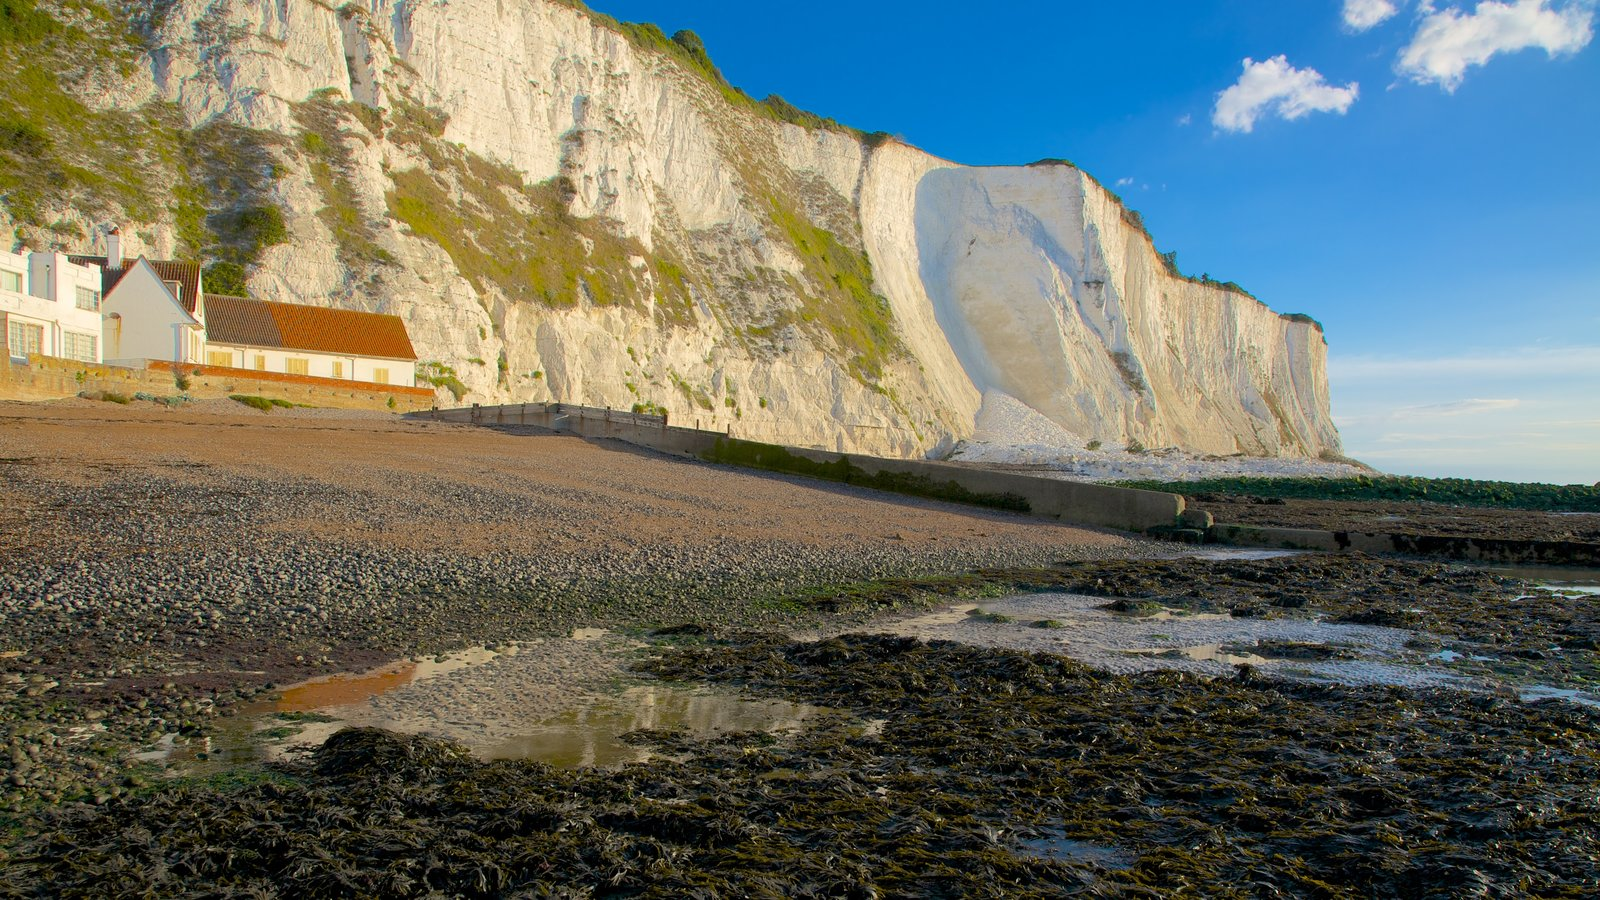 Dover showing landscape views, rugged coastline and a house